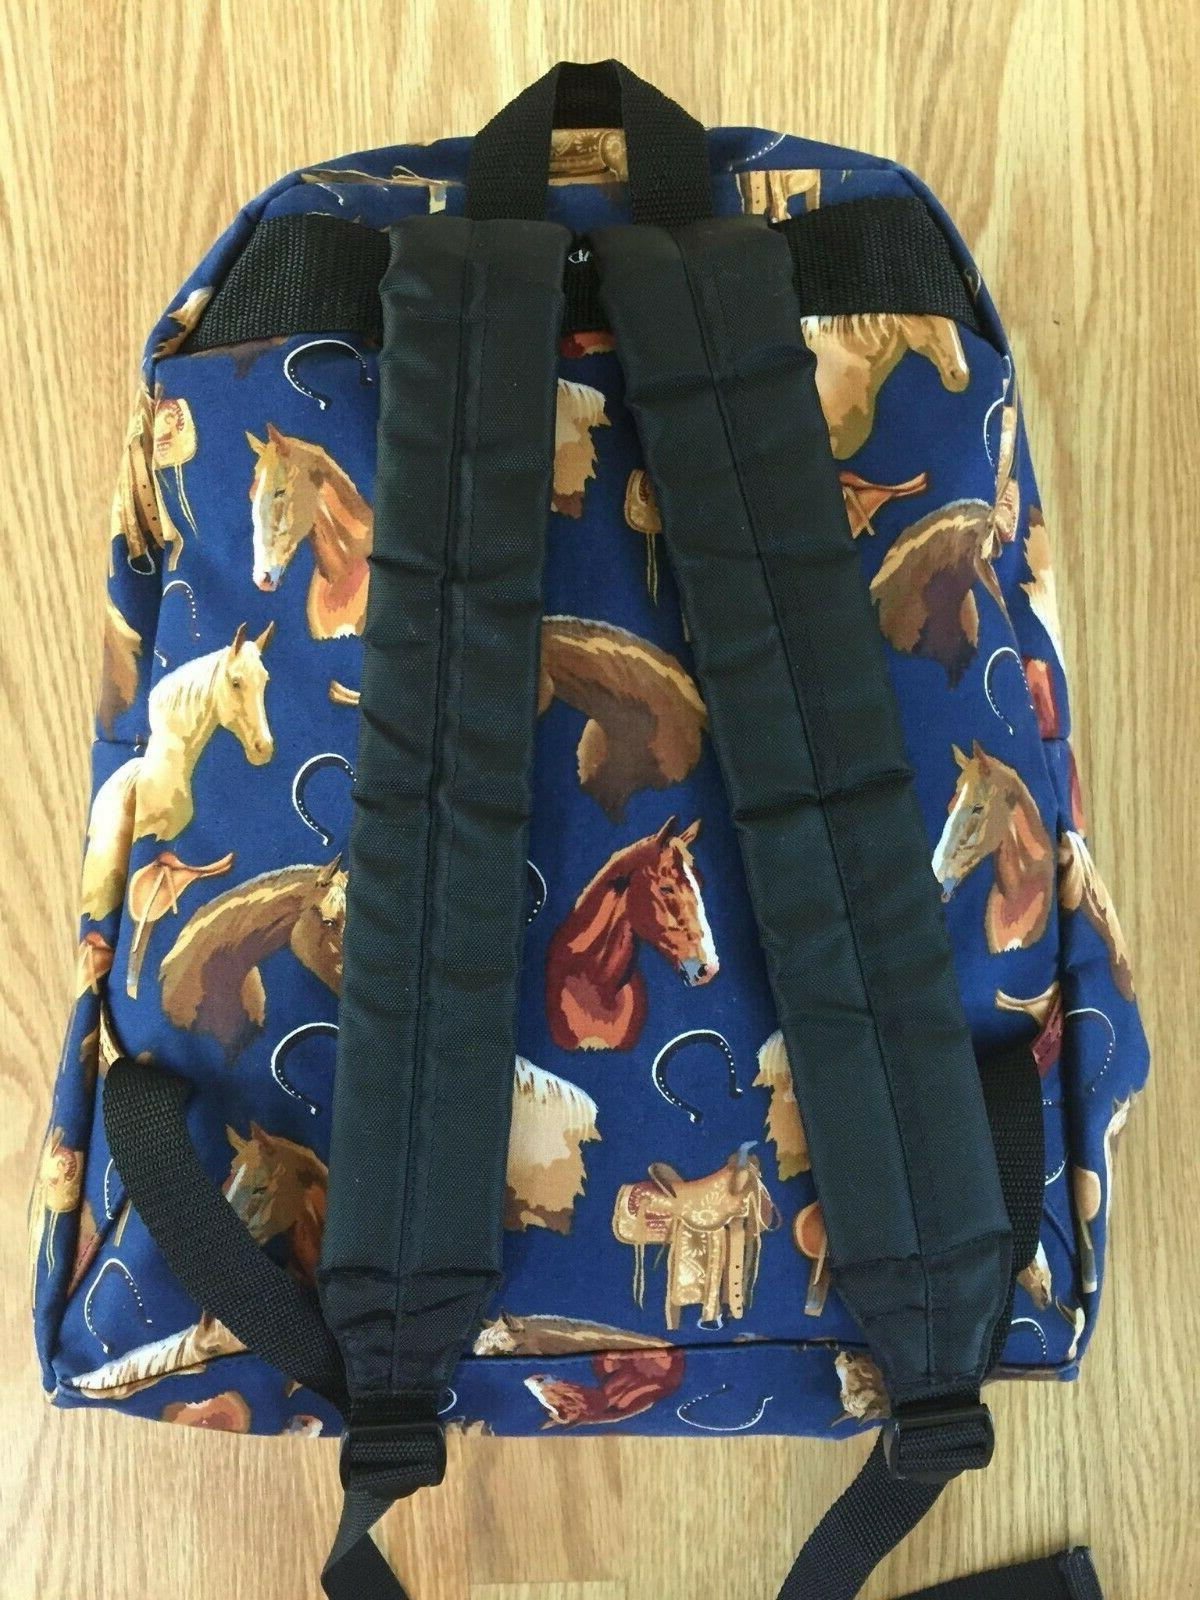 Broad Cotton Horse Themed Backpack Lunchbox Set BRAND